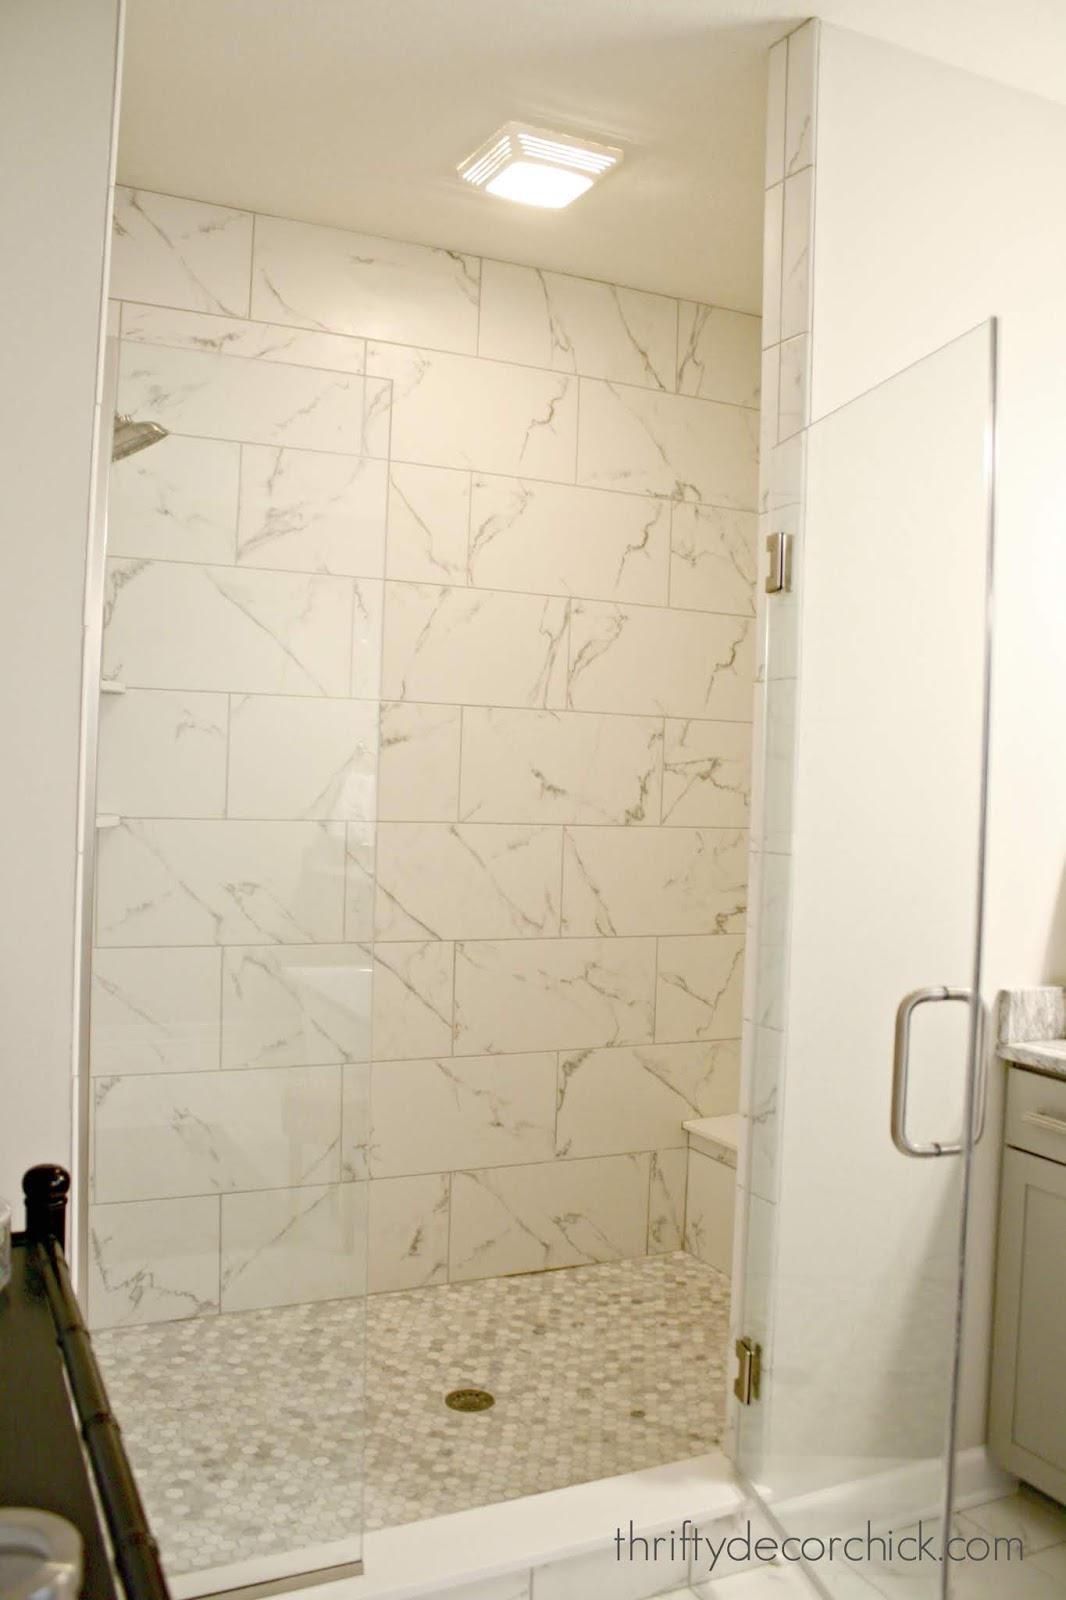 Marble lookalike in walk in shower